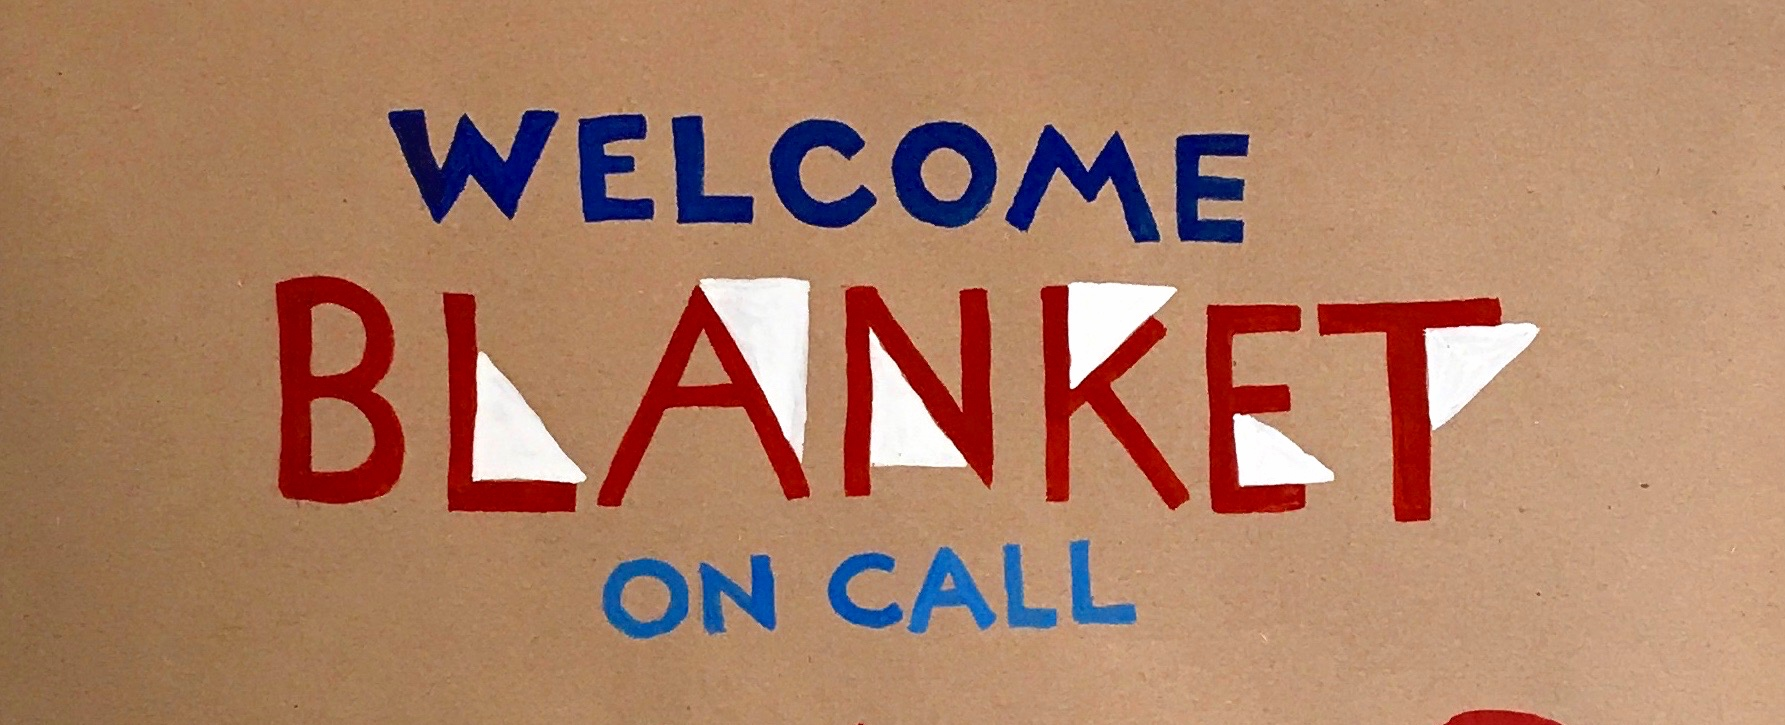 Welcome Blanket On Call.jpg